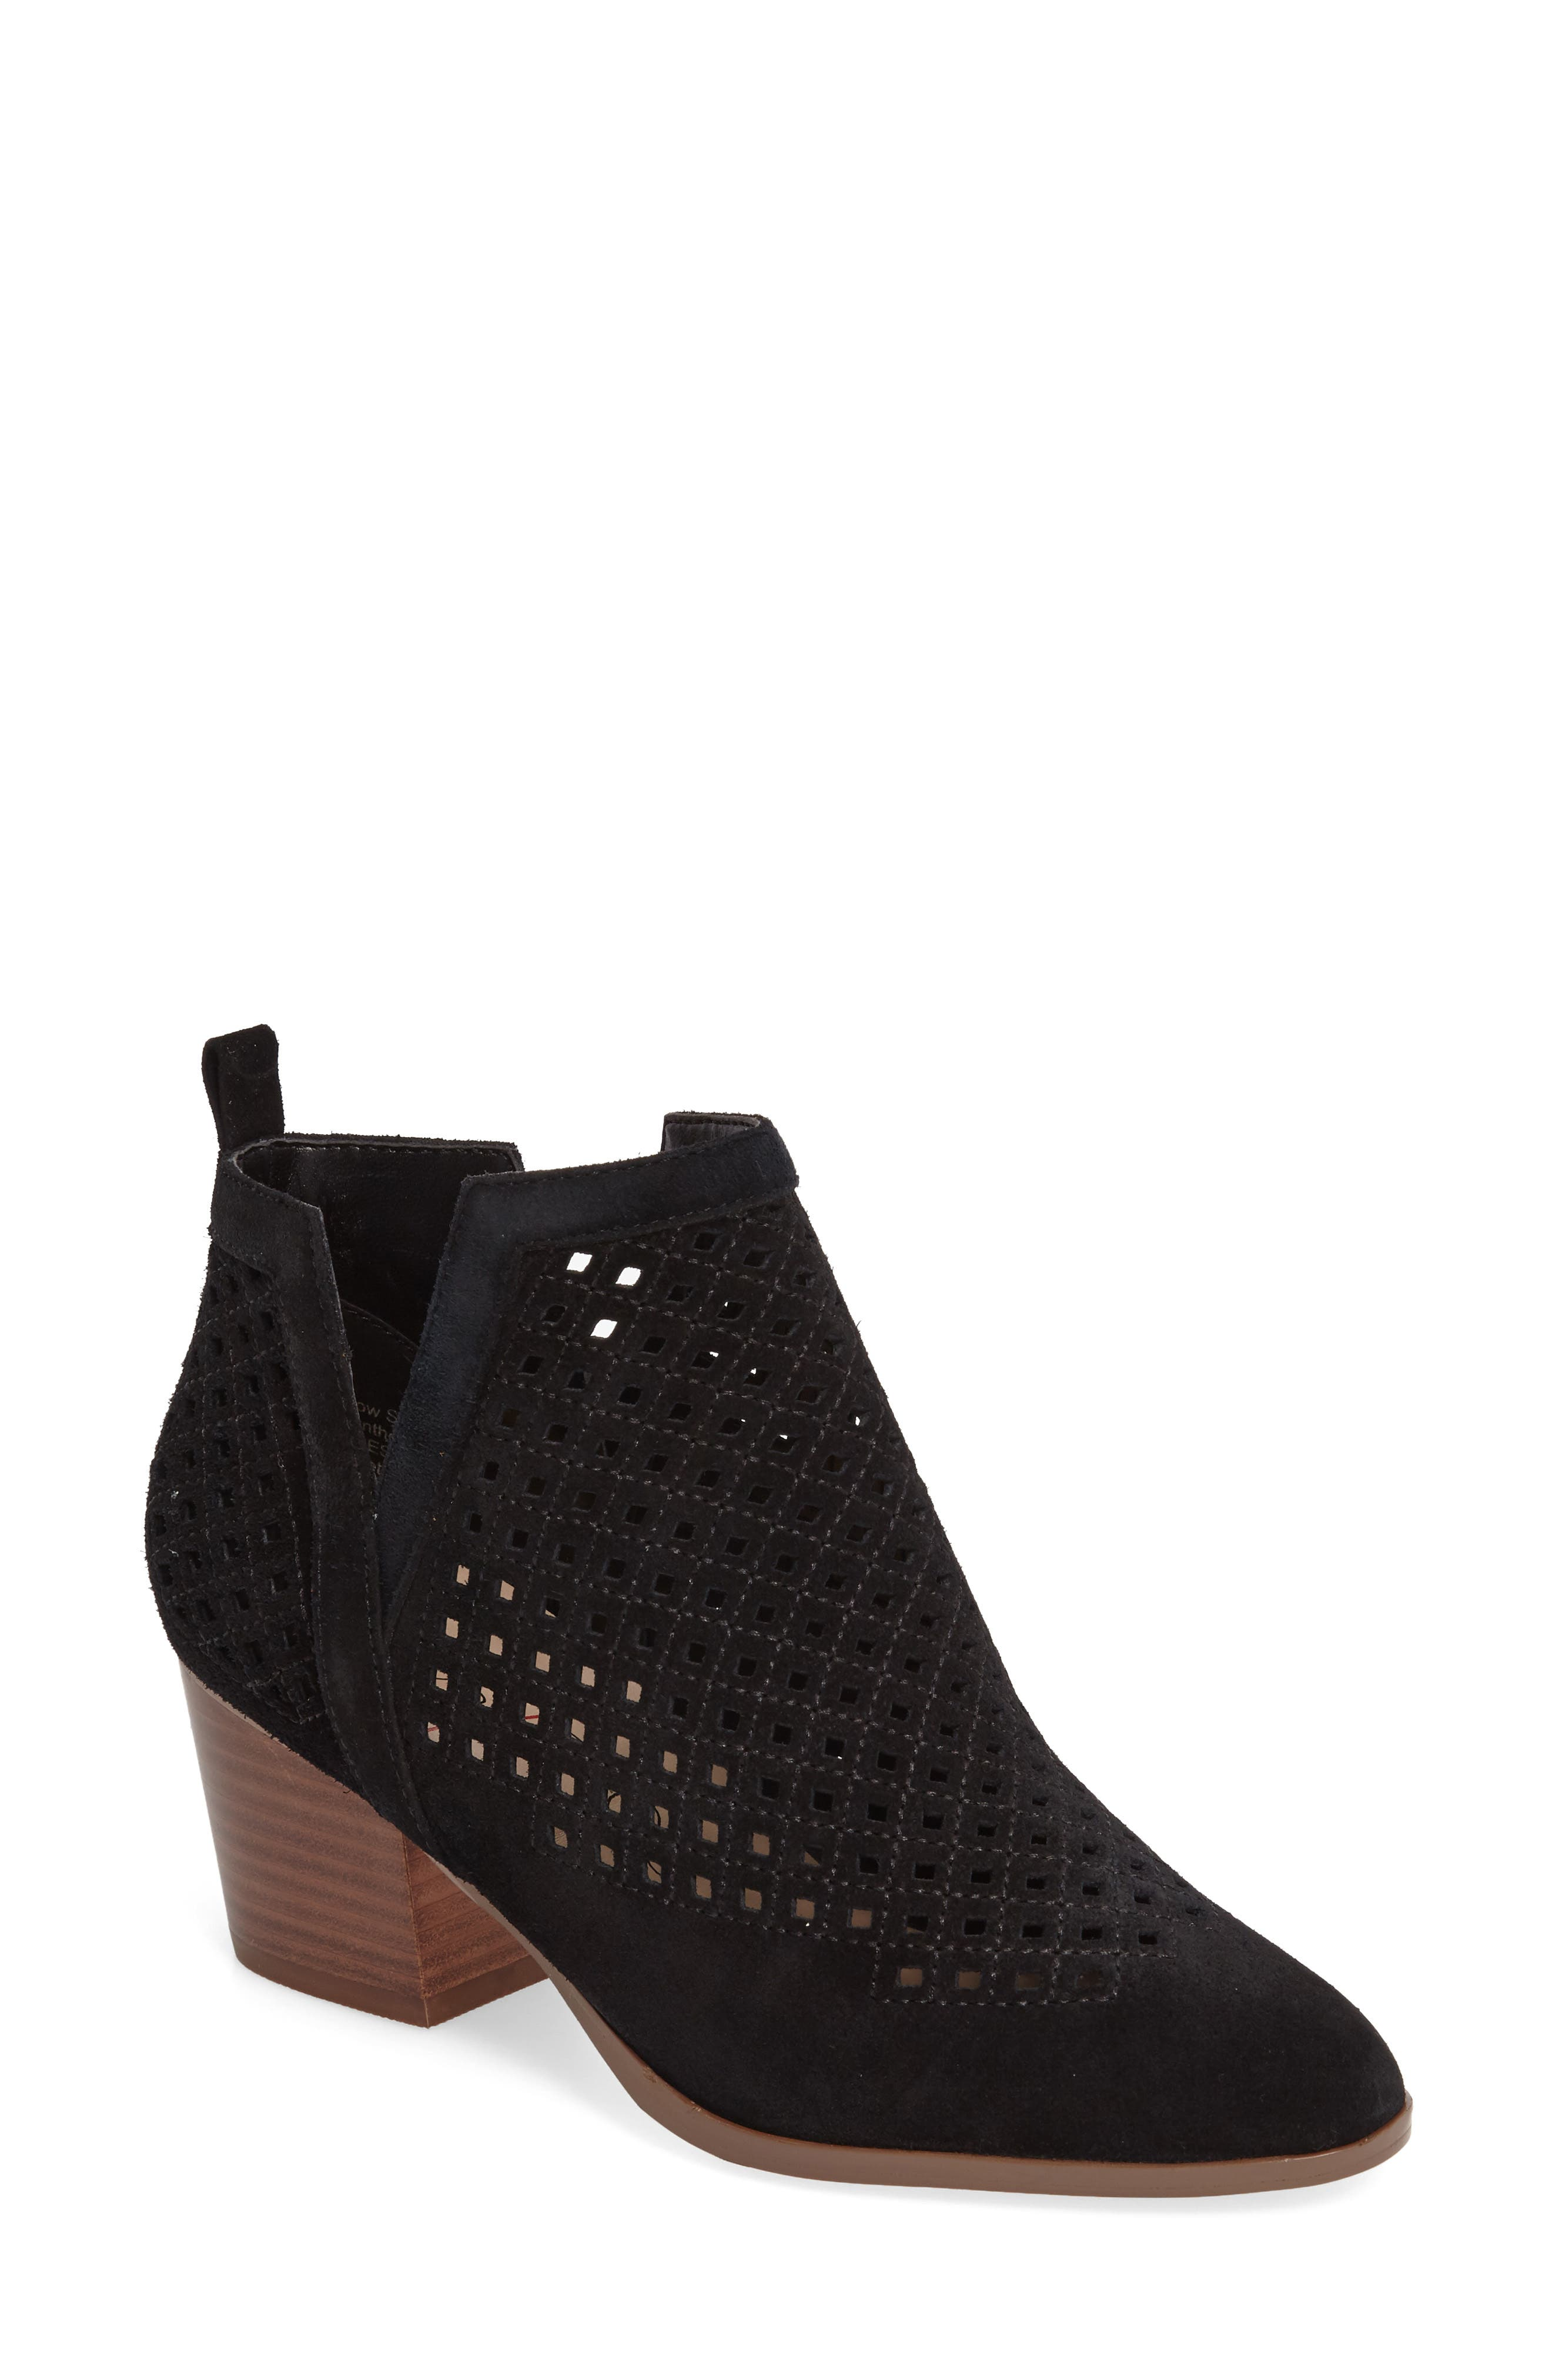 Alternate Image 1 Selected - Sole Society Barcelona Bootie (Women)